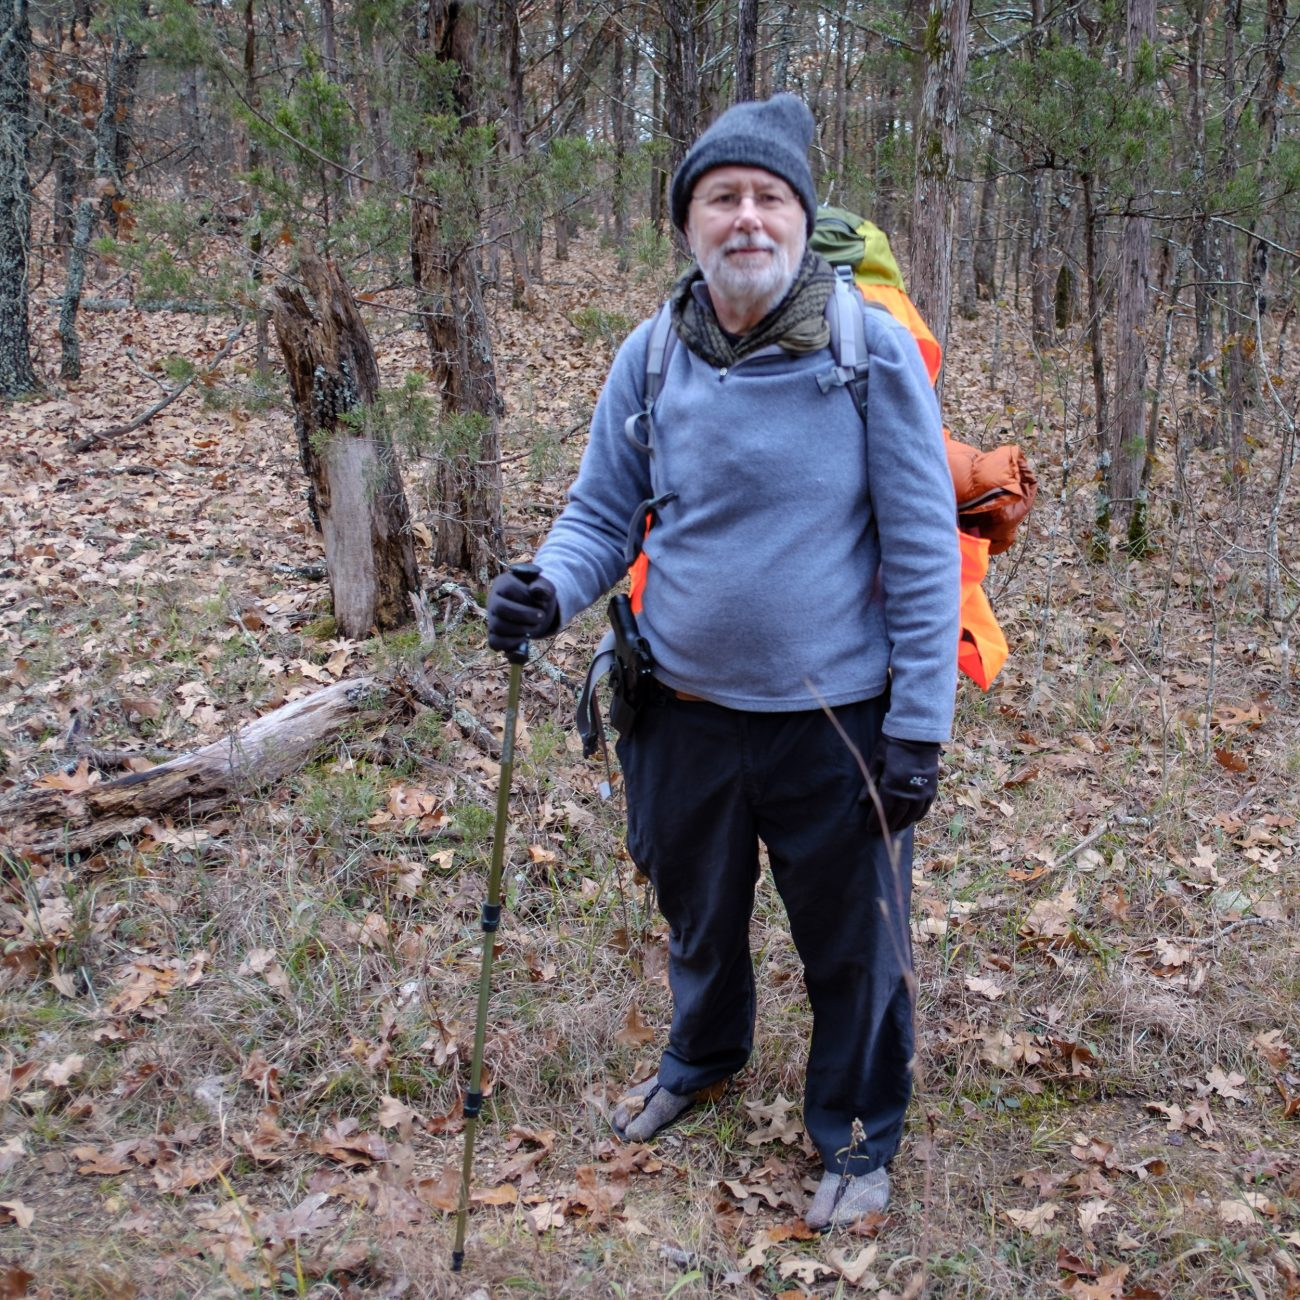 Gary Allman on the Pees Hollow trail at Hercules Glades Wilderness.